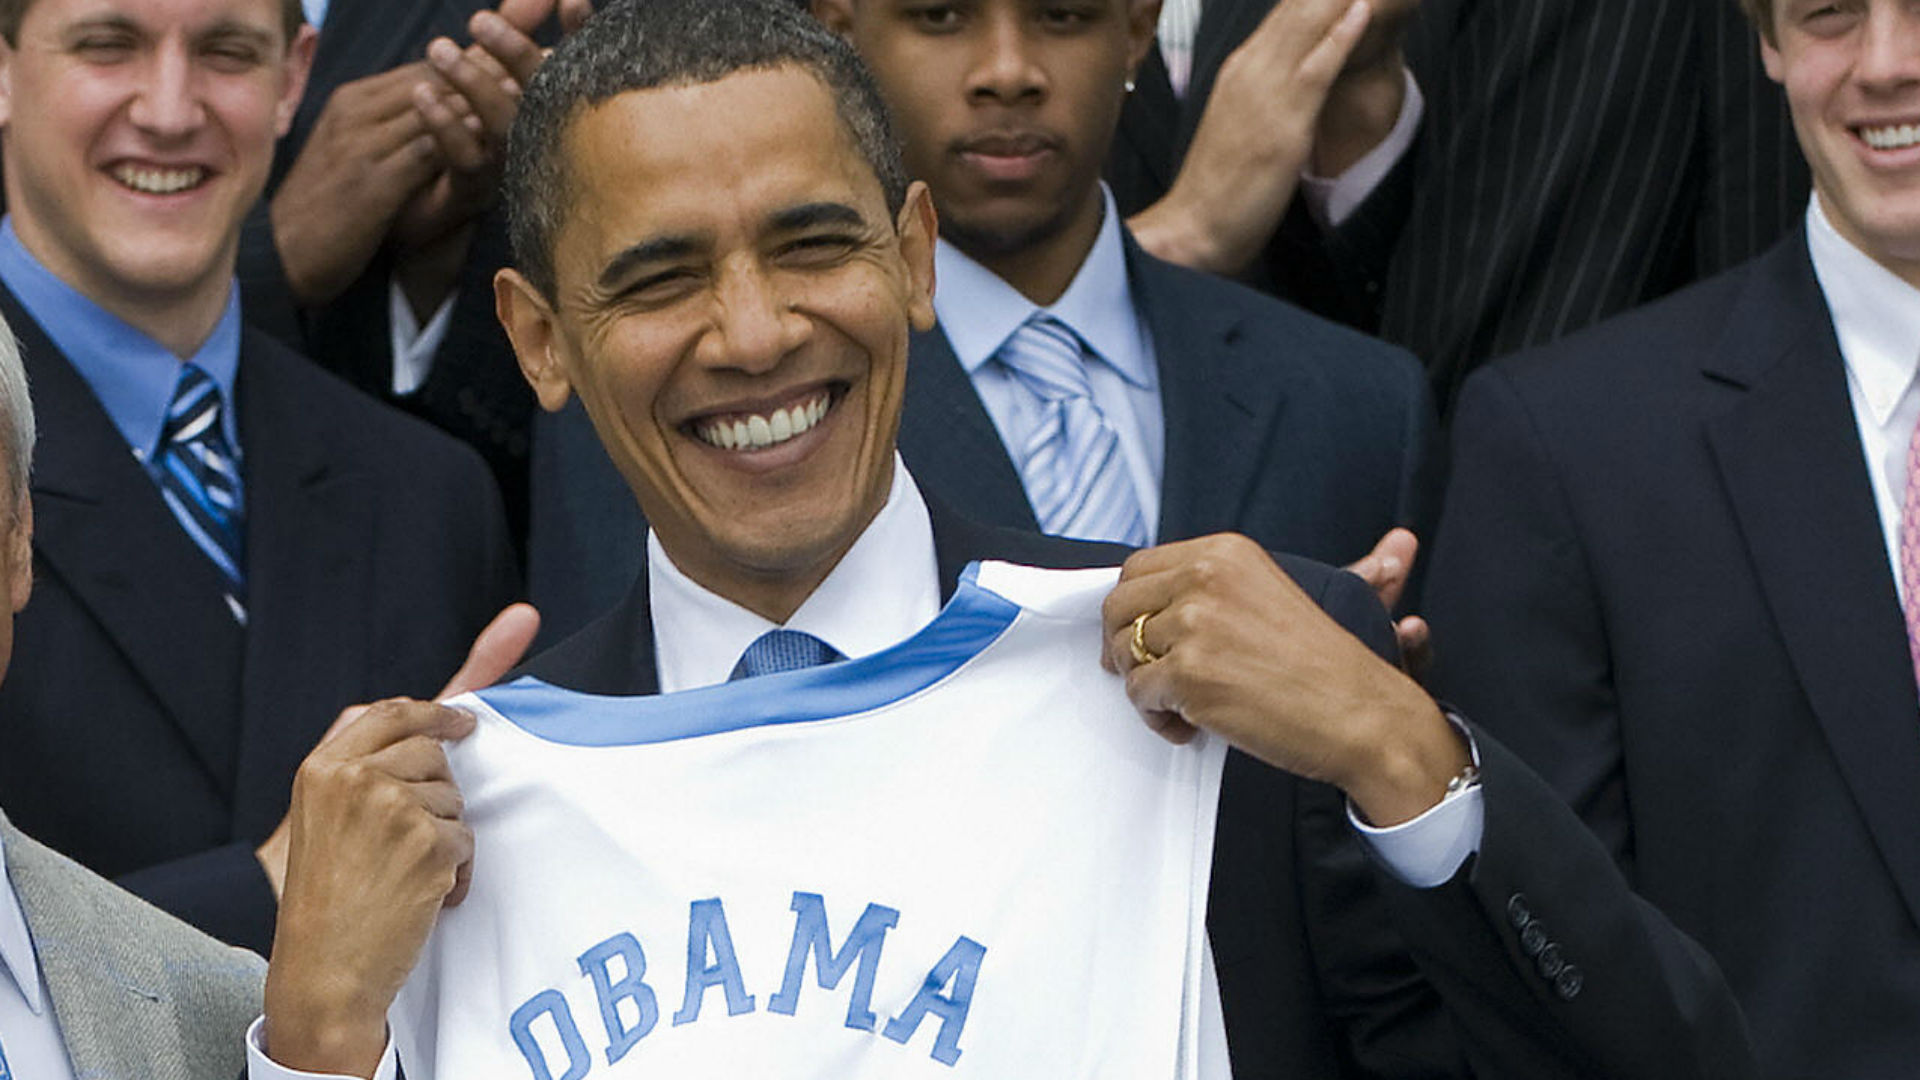 2017 all star game tickets nba - Petition Begs Barack Obama To Play In The 2017 Nba Celebrity All Star Game Nba Sporting News